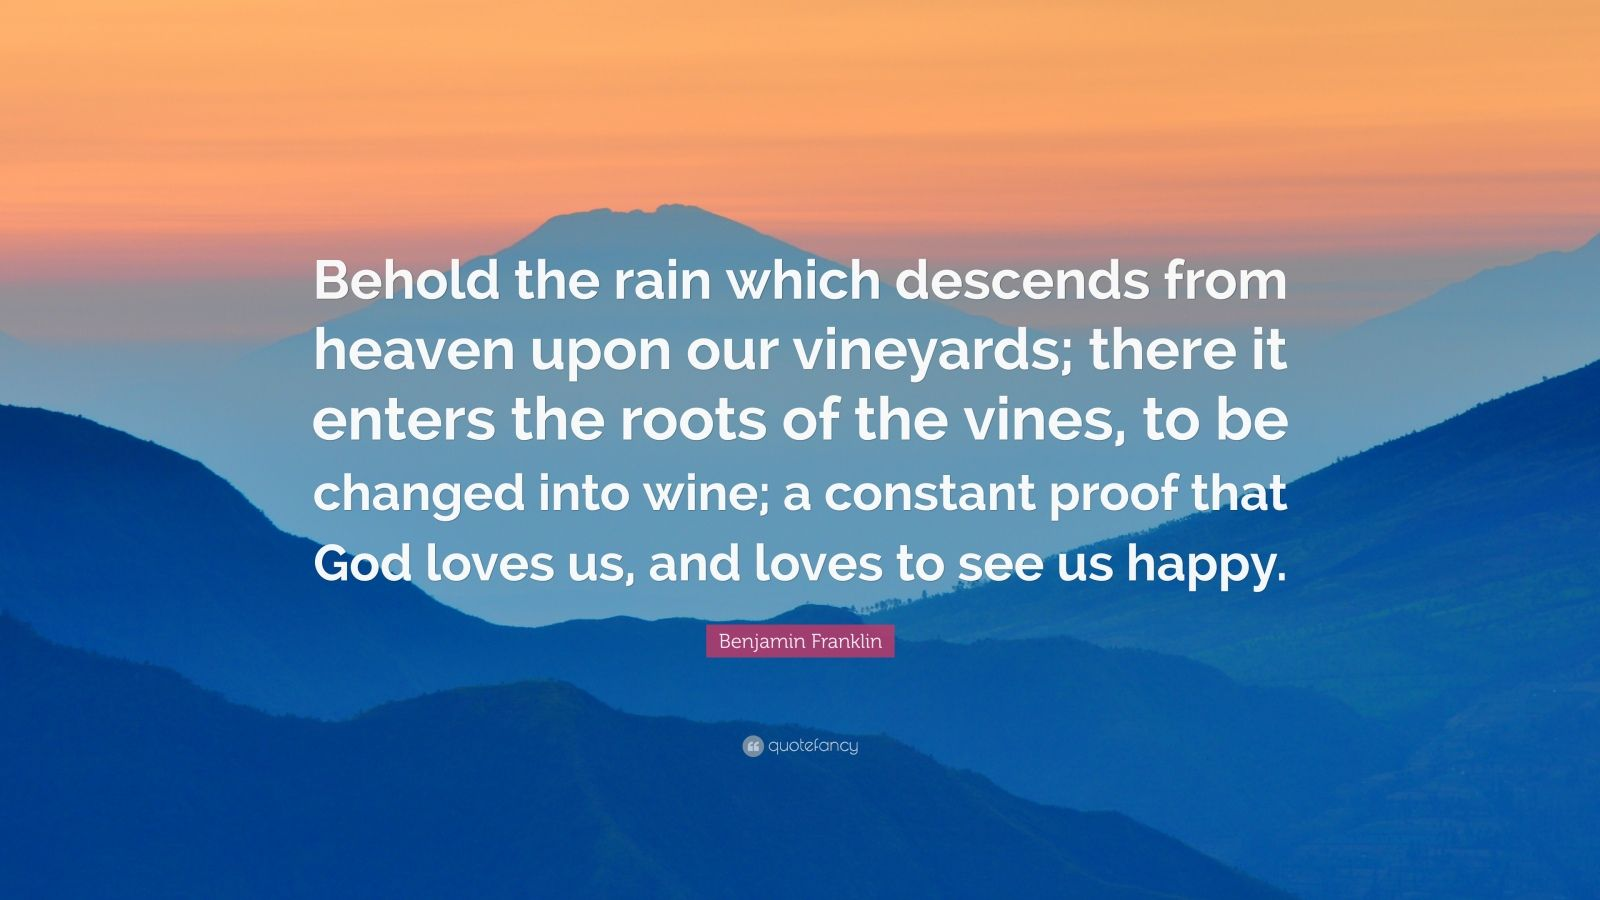 """Benjamin Franklin Quote: """"Behold the rain which descends from heaven upon our vineyards; there it enters the roots of the vines, to be changed into wine; a constant proof that God loves us, and loves to see us happy."""""""